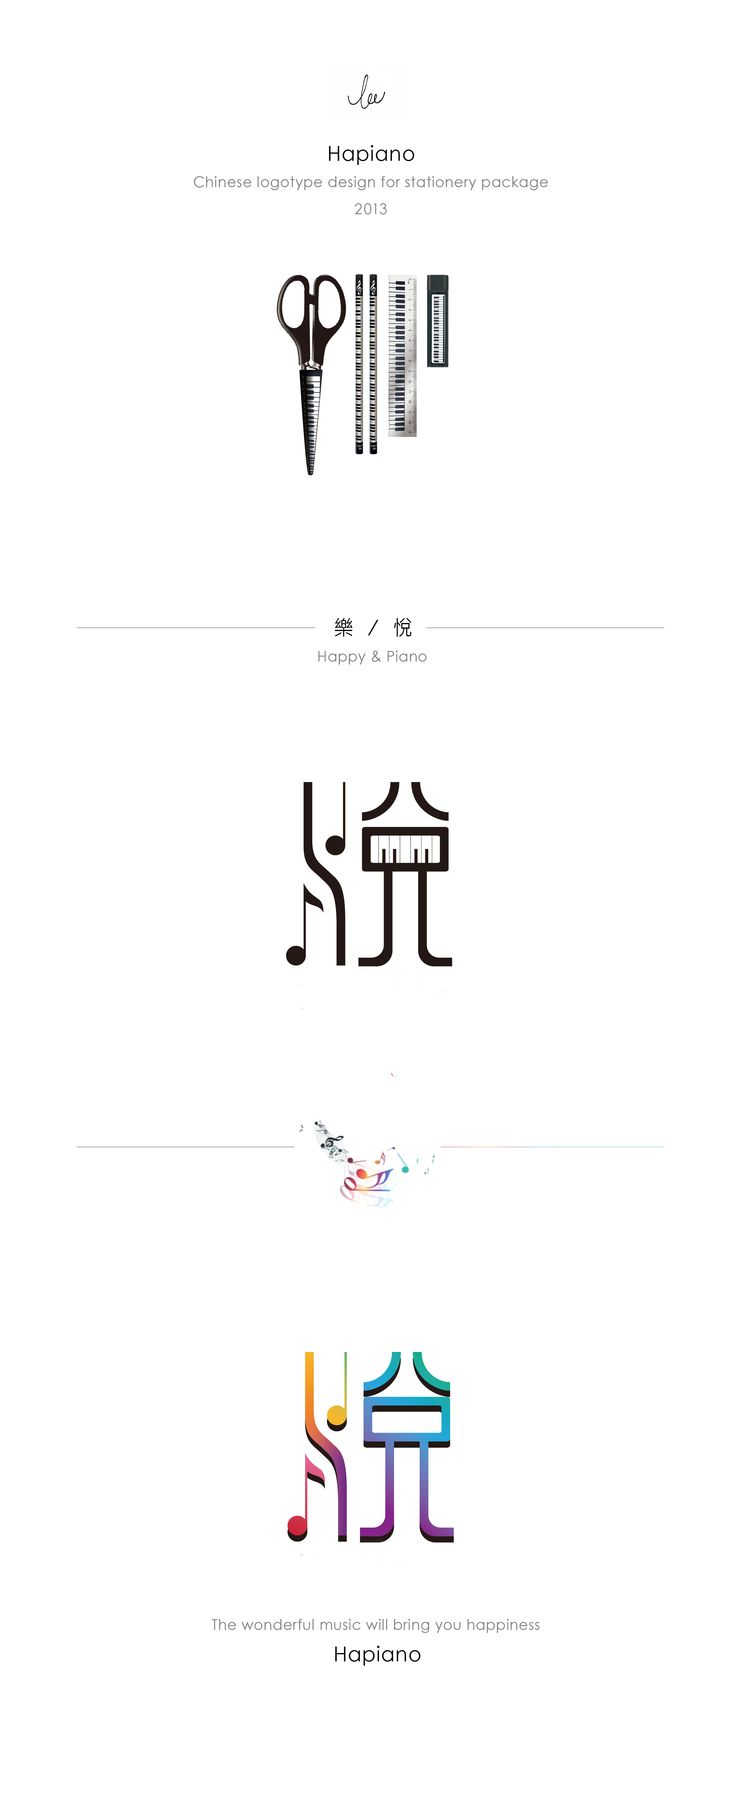 Logotype of stationery package - Hapiano The wonderful music will bring you happiness